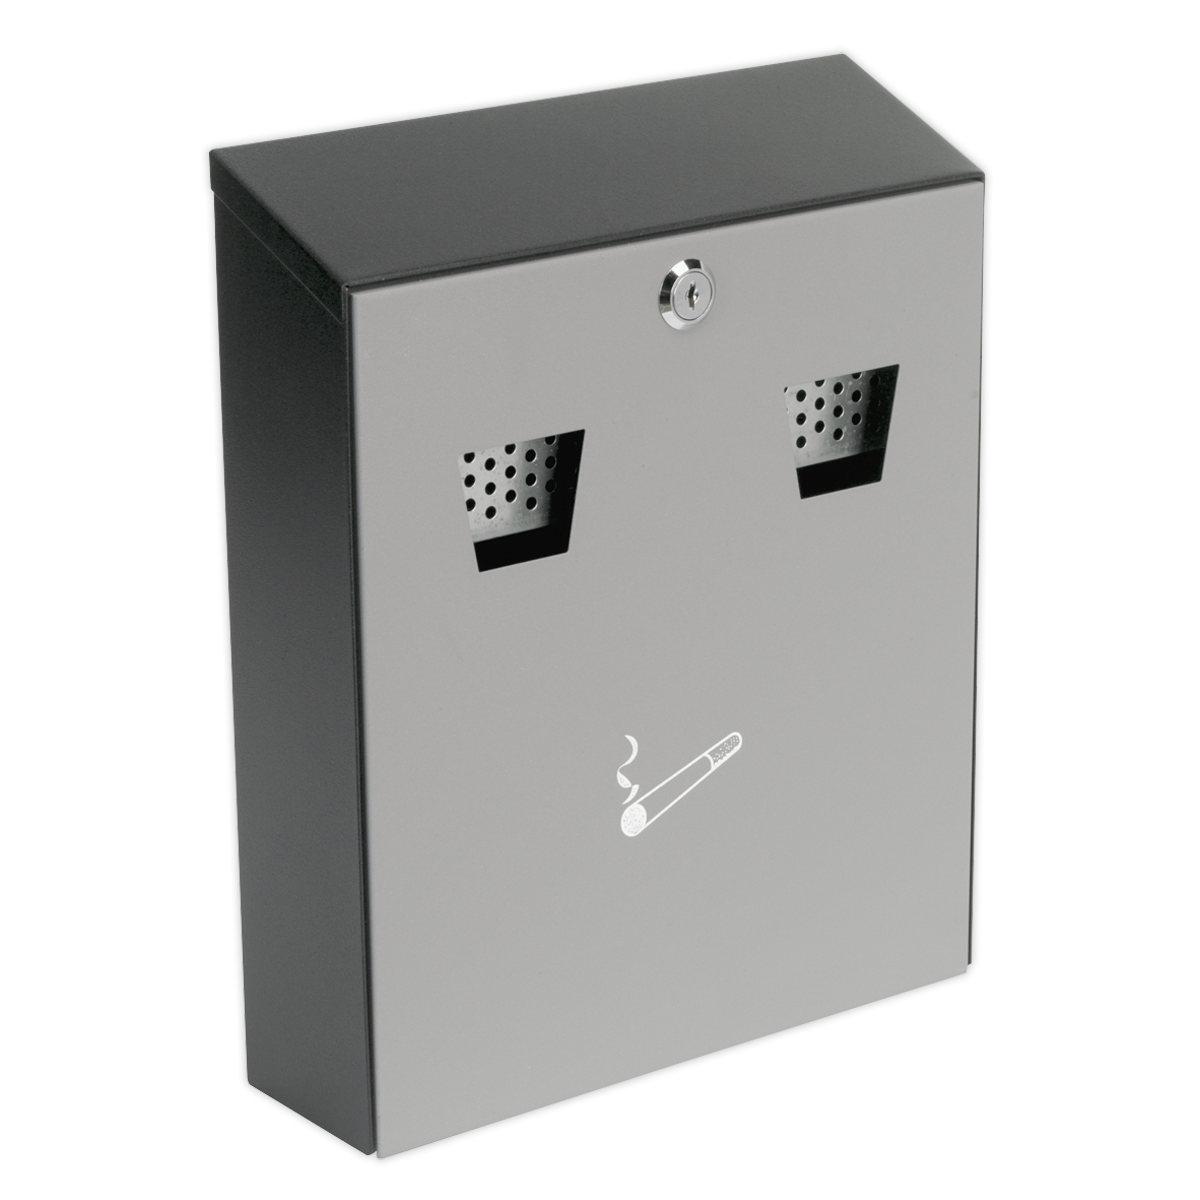 - Cigarette Bin Wall Mounting SEALEY RCB01 by Sealey